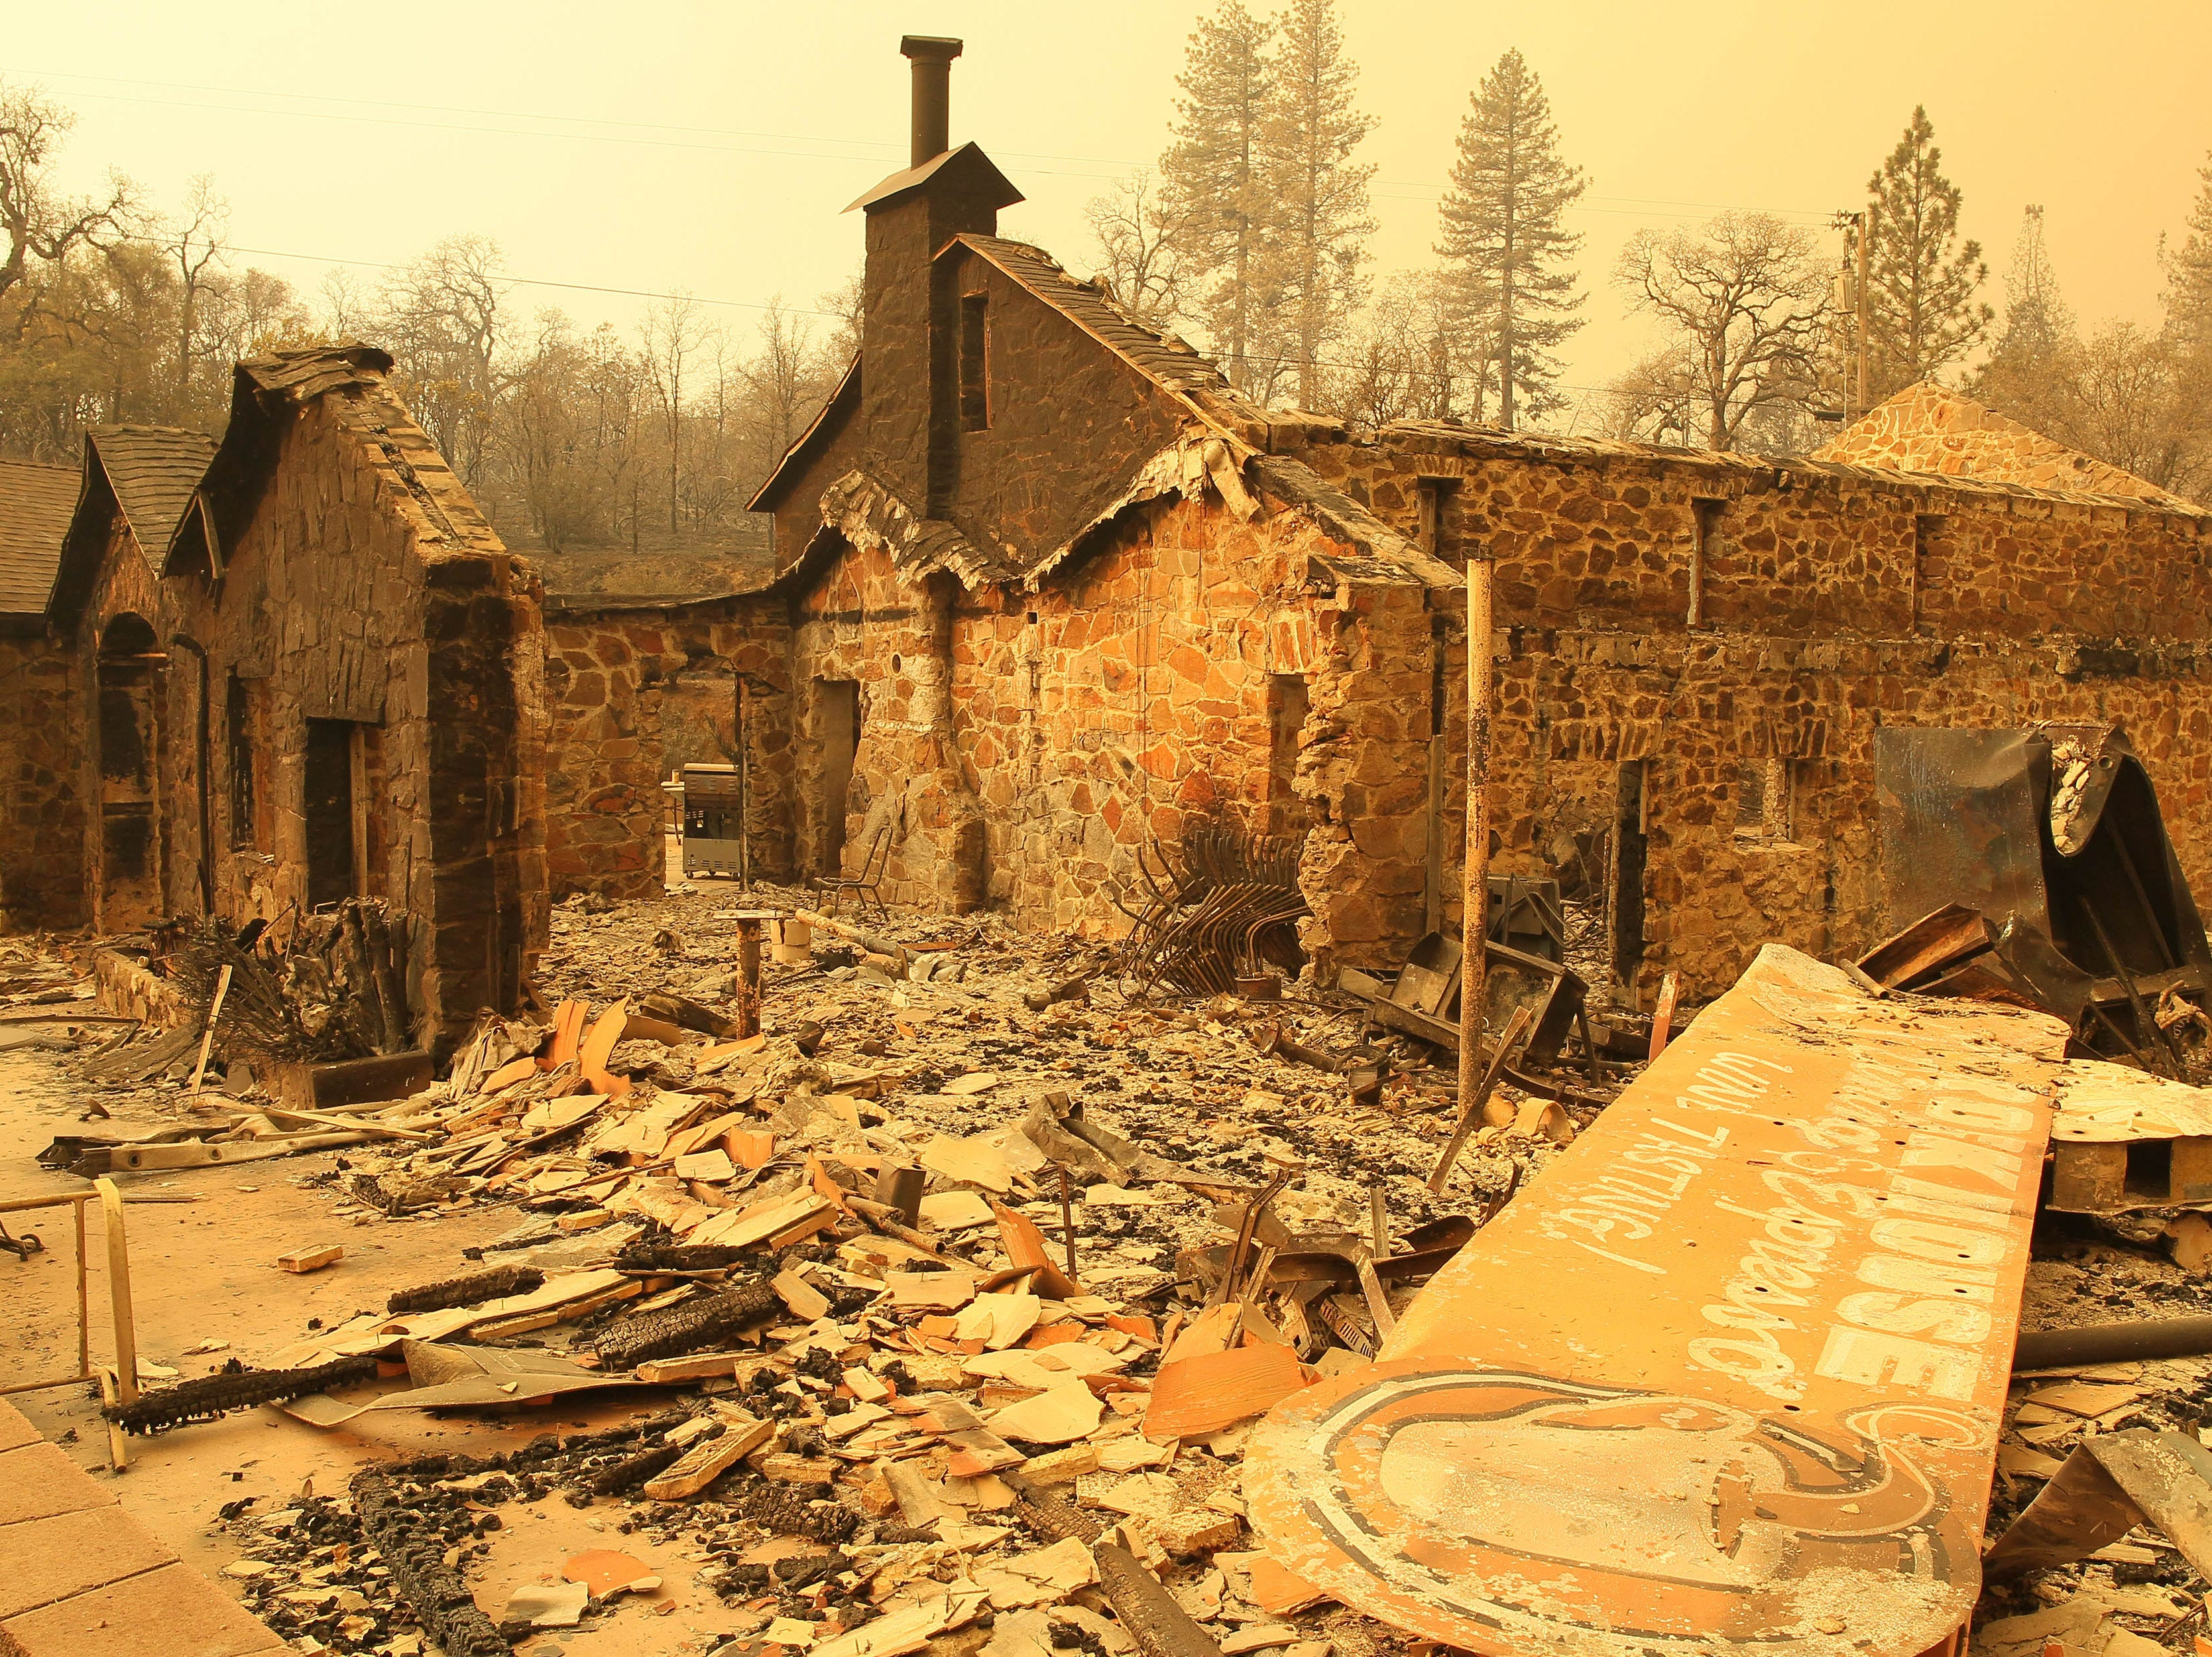 Monday: 42 killed in Camp Fire, making it deadliest California wildfire in modern history